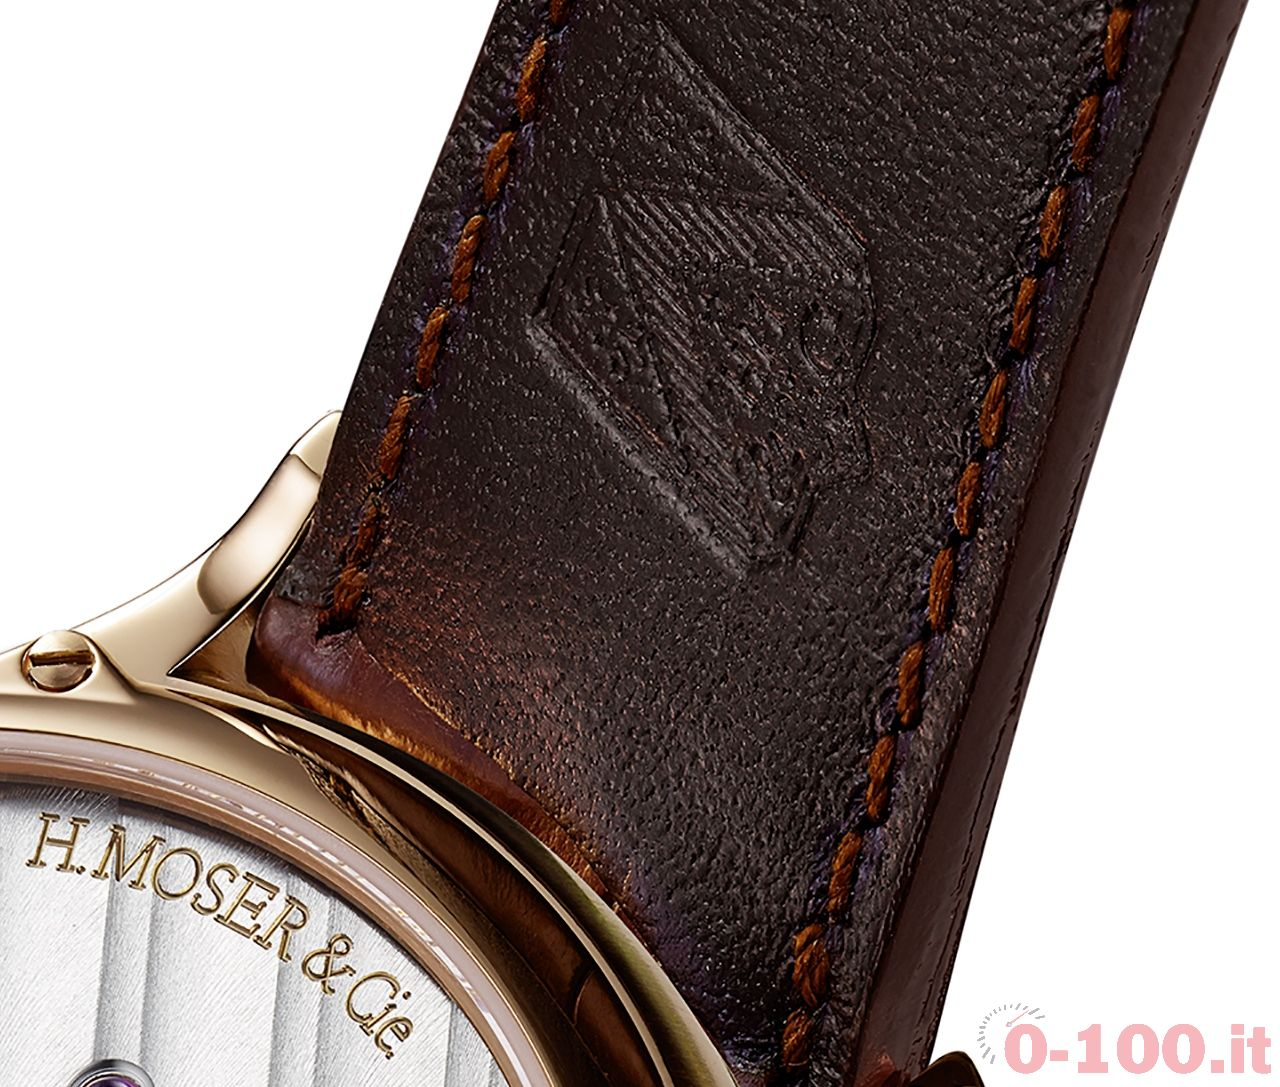 Baselworld-2014-H. Moser & Cie Venturer Small Seconds _0-10027